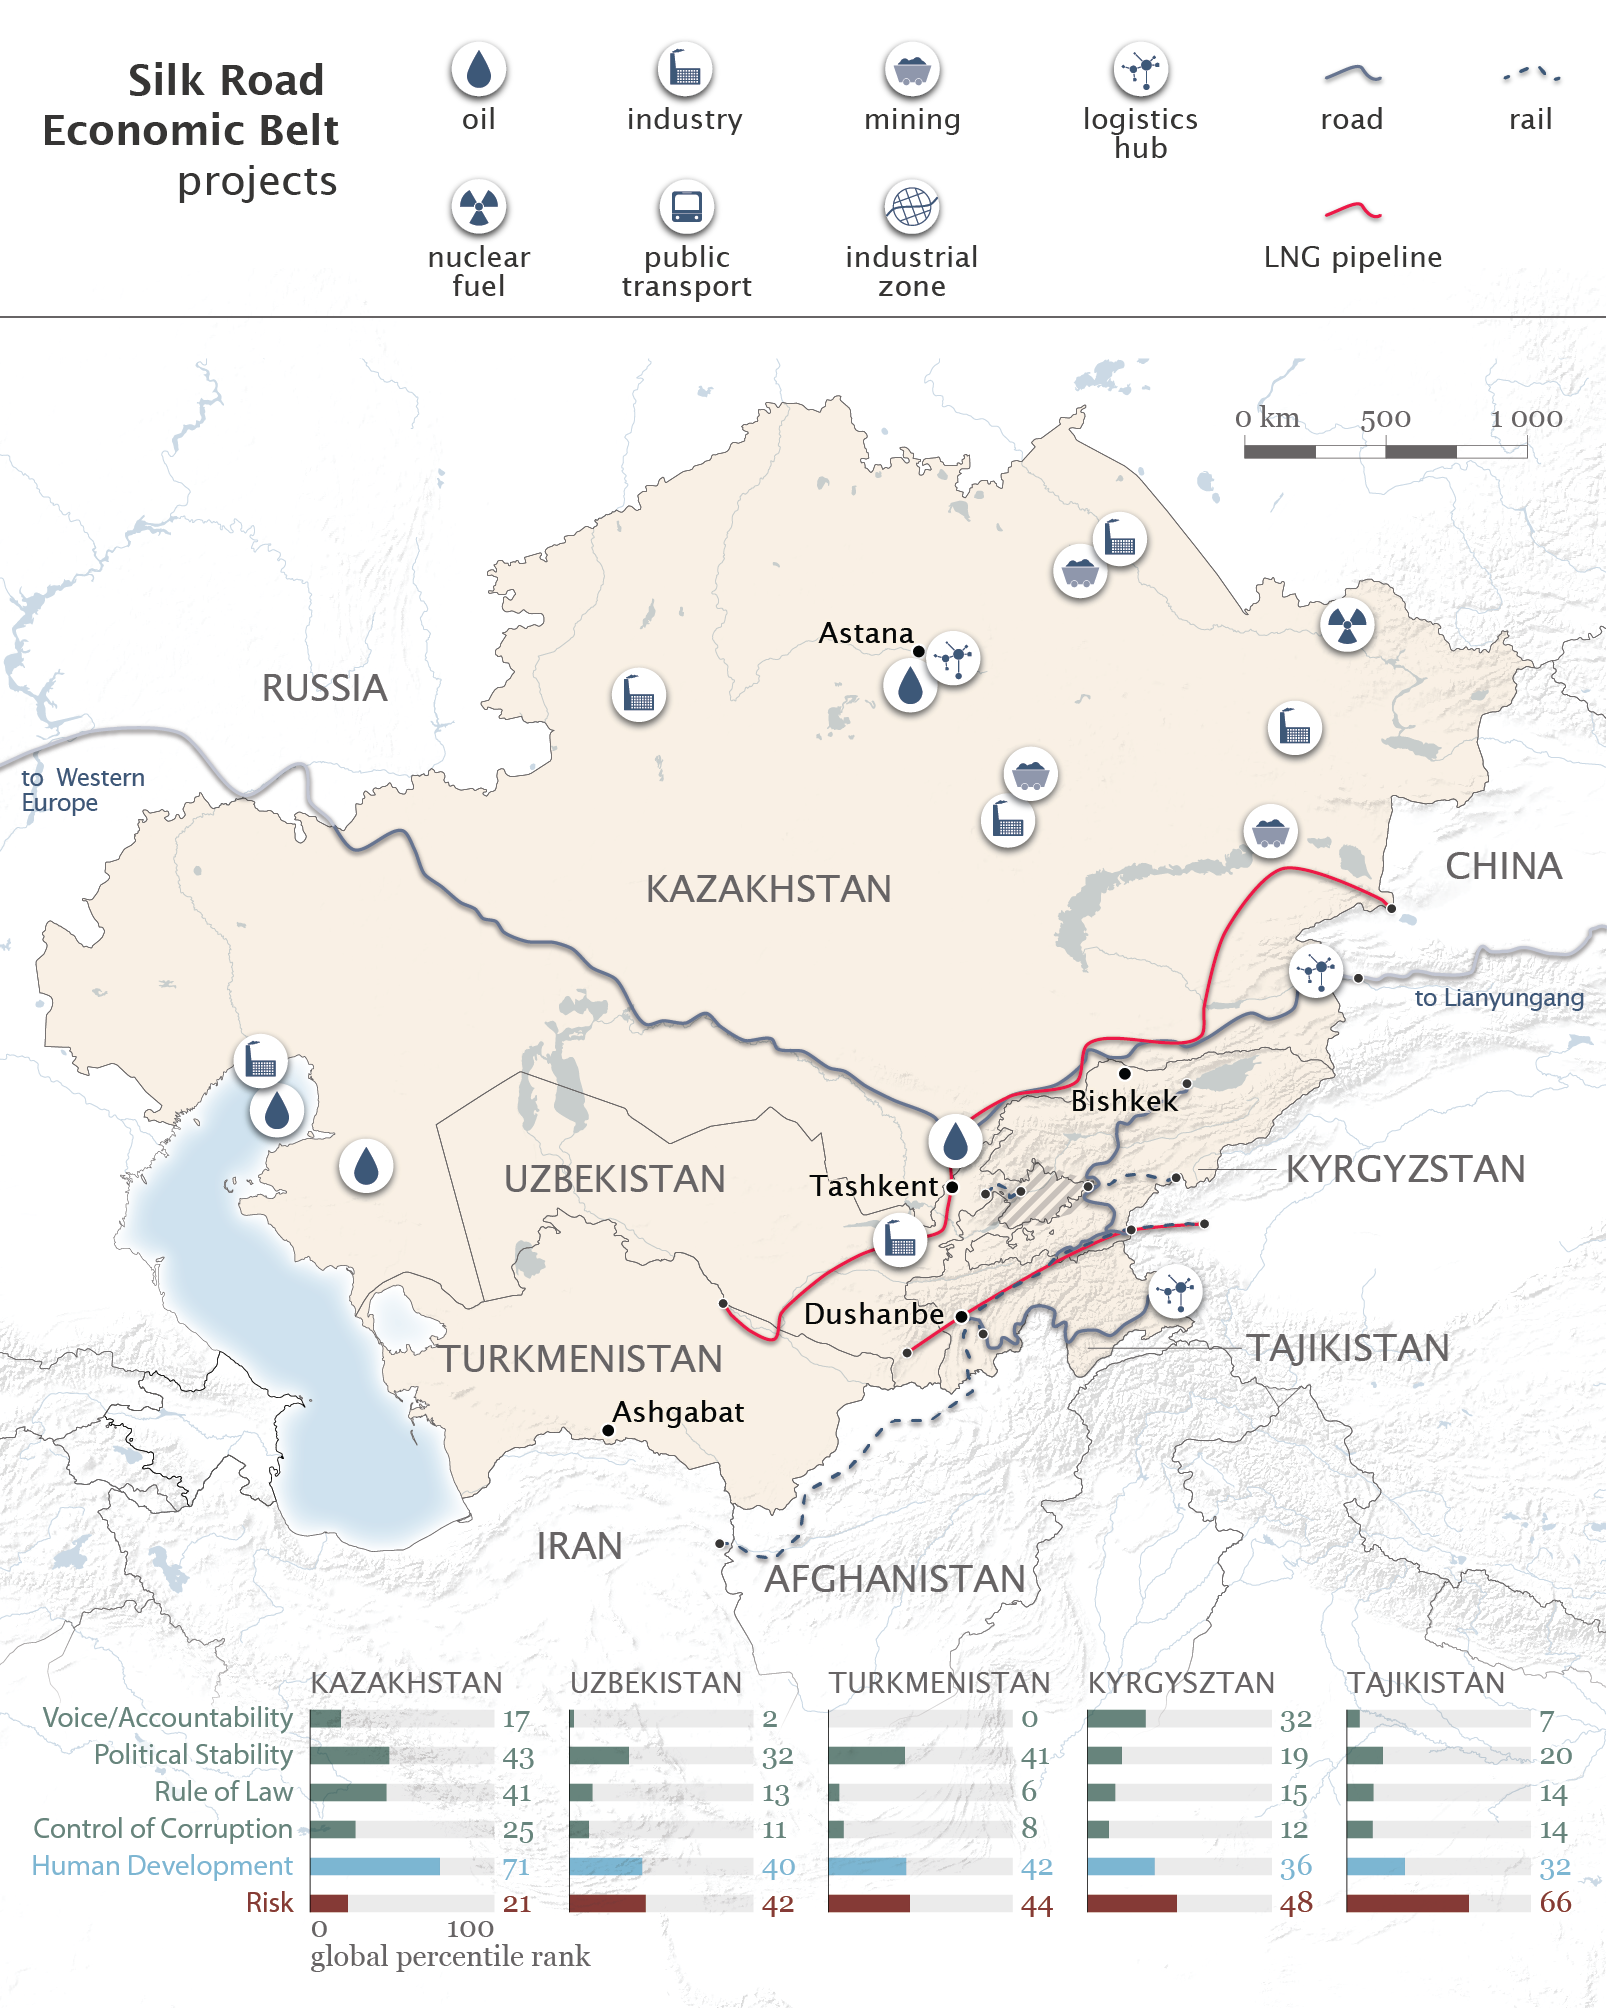 Map of Central Asia illustrating Silk Road Economic Belt projects